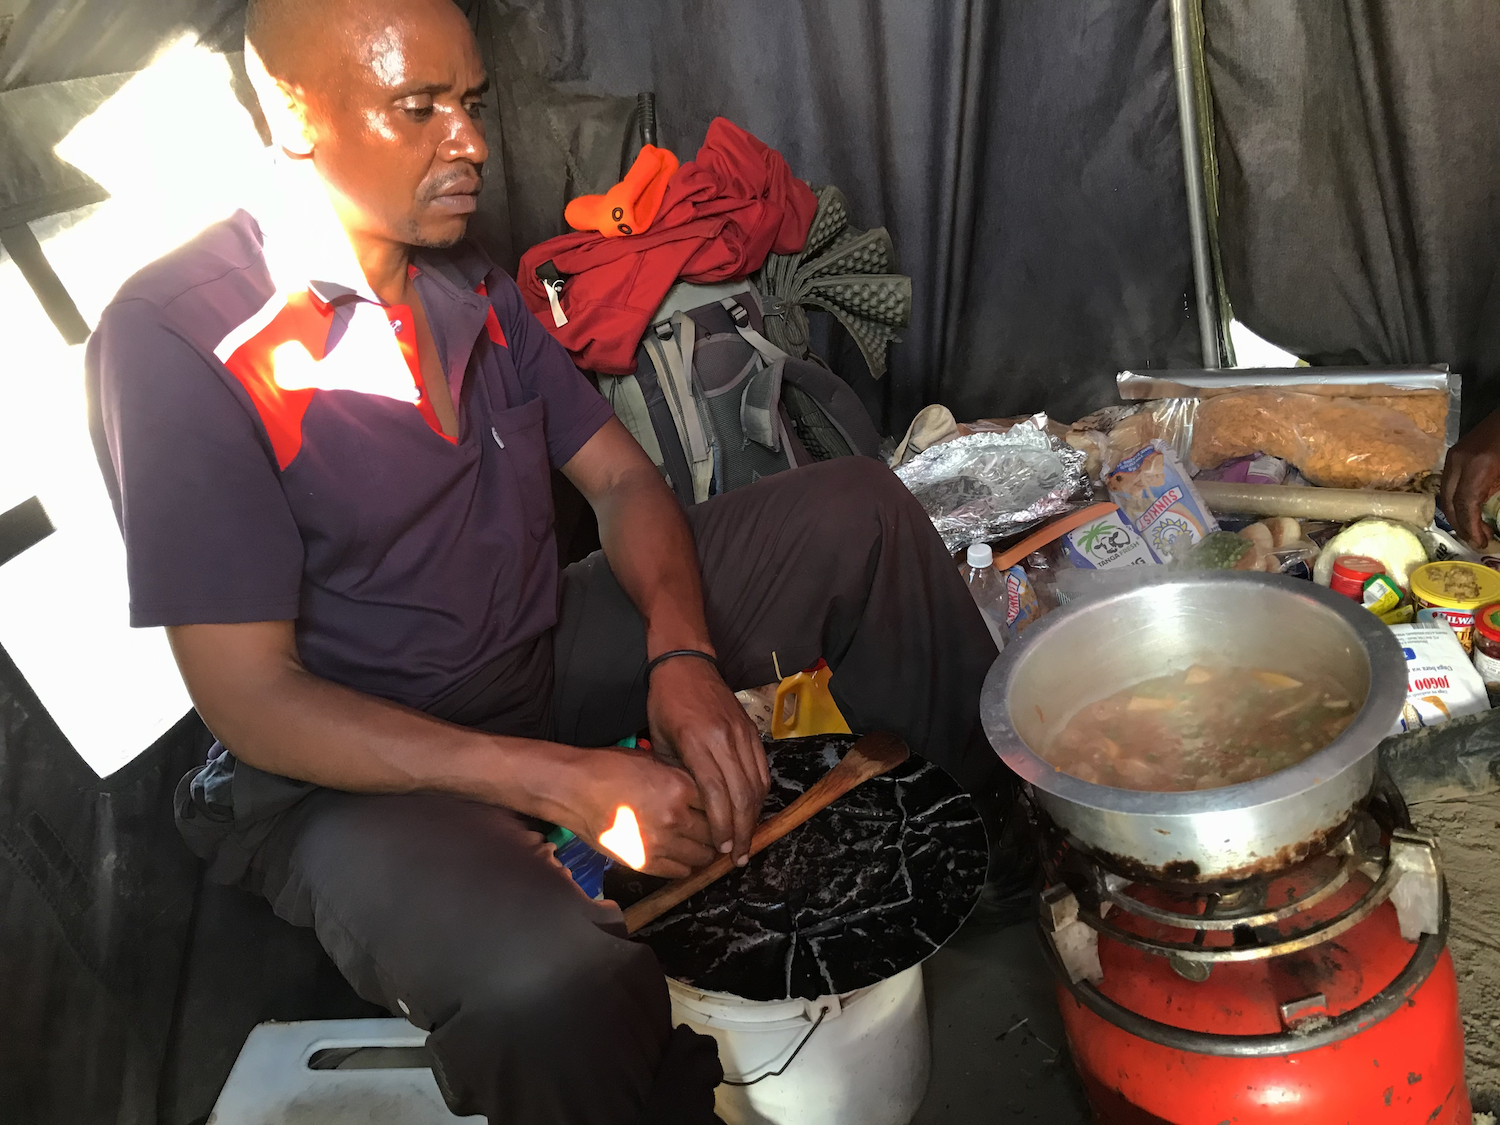 Chef Julius gives me a dinner preview. All meals are prepared on this propane stove. At night, the dirt-floored mess tent converts to sleeping space for Julius and several of the porters.